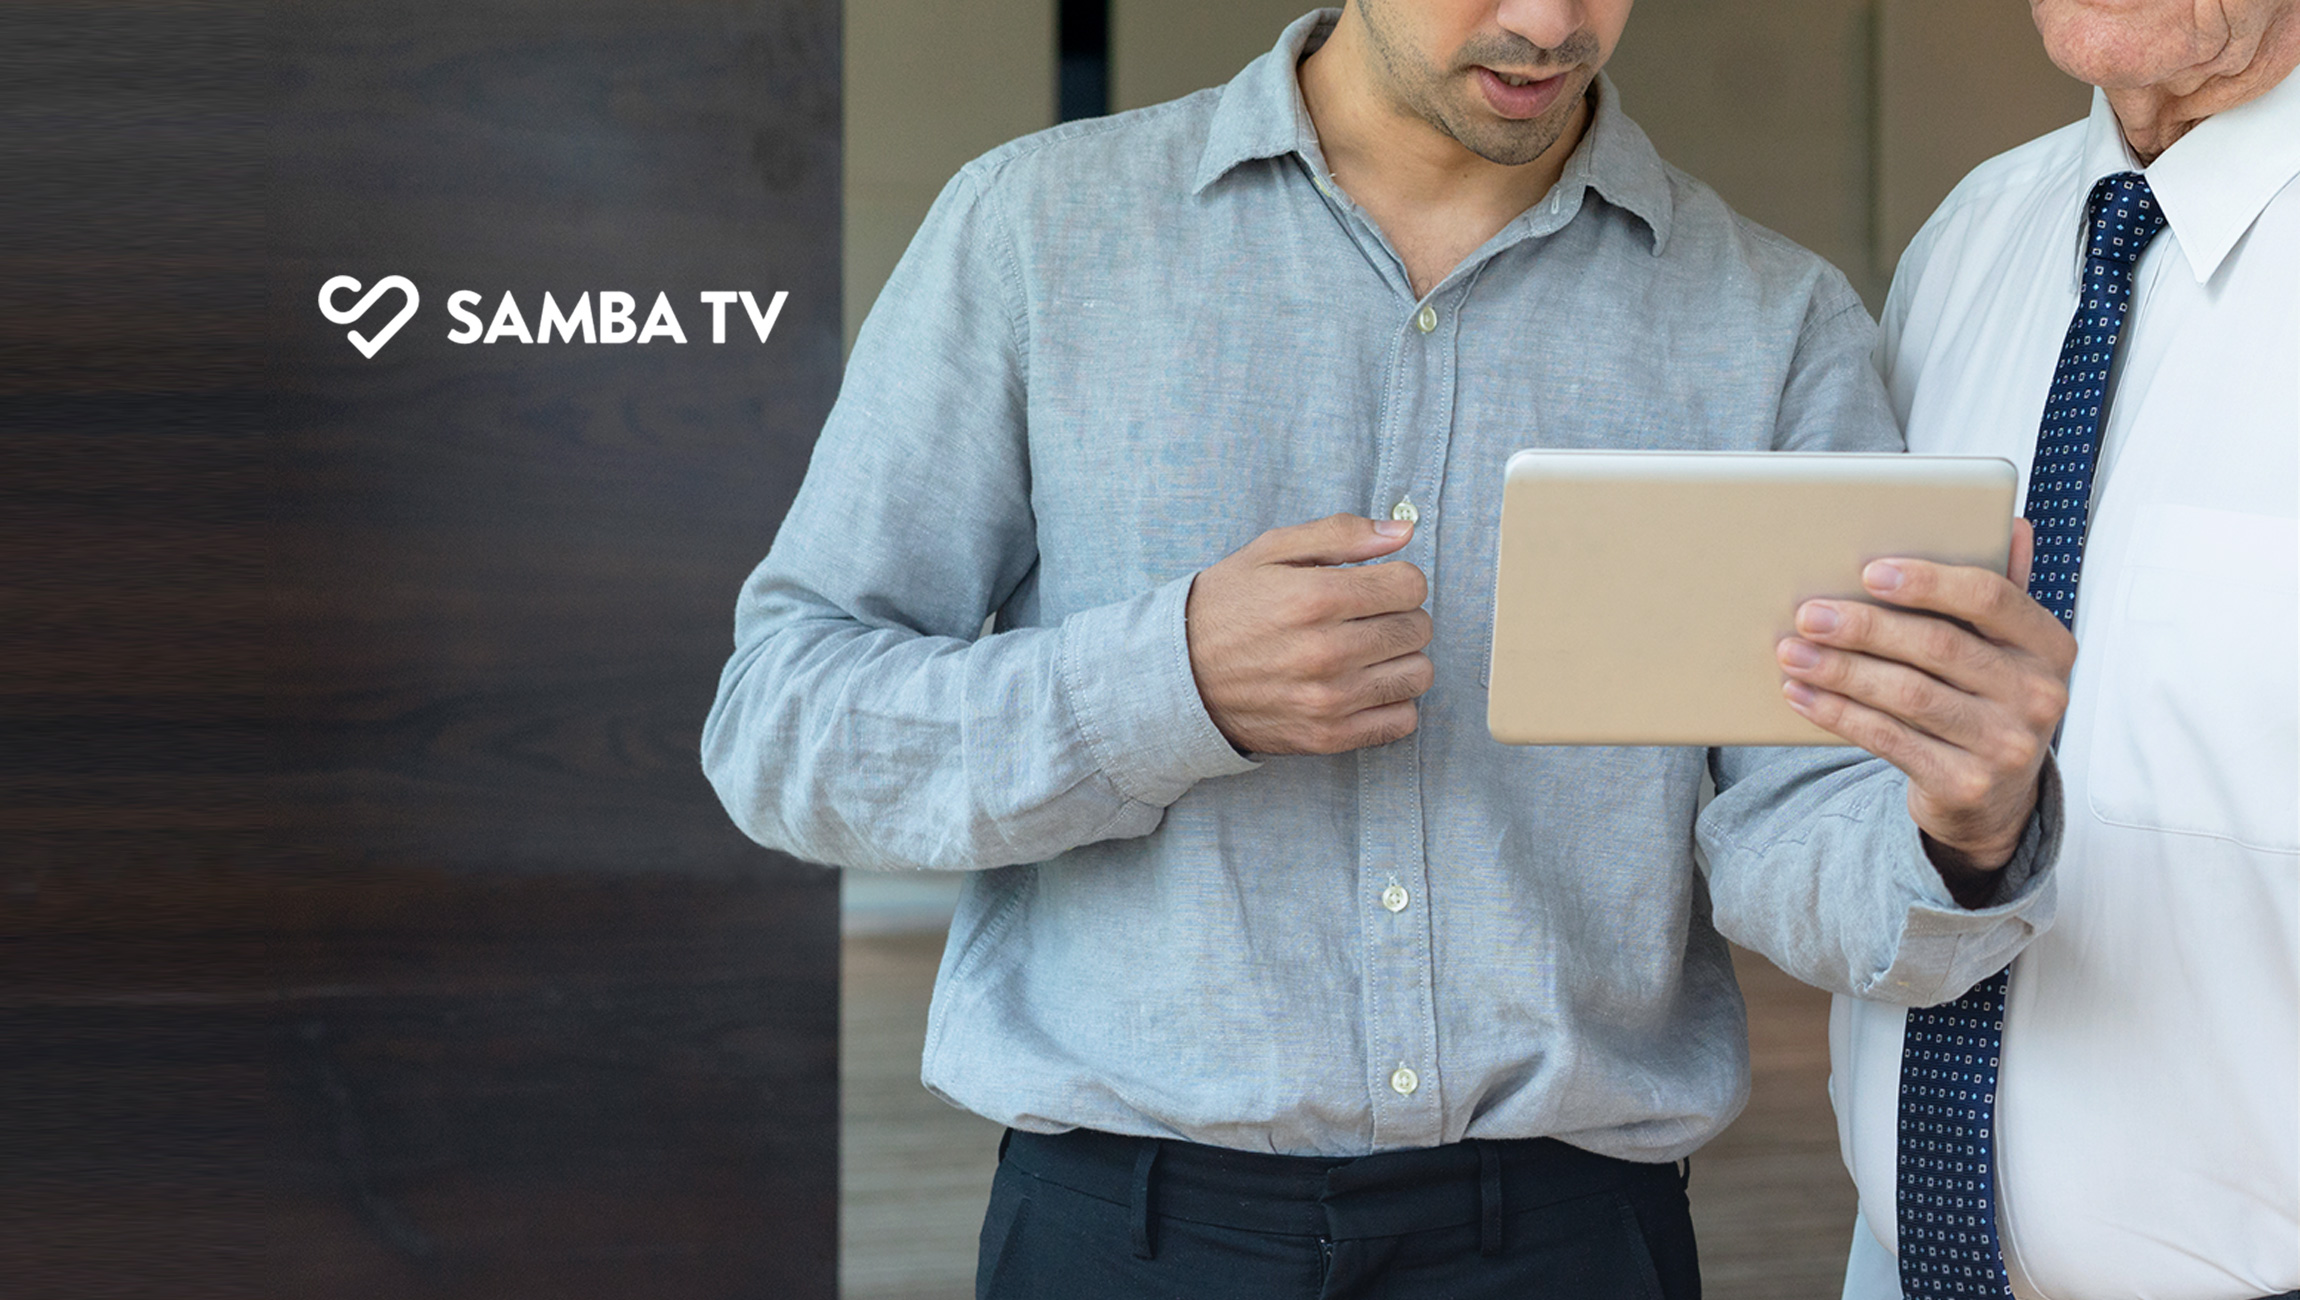 Samba TV's Tune-In Measurement Solution is Now Available in Google Marketing Platform